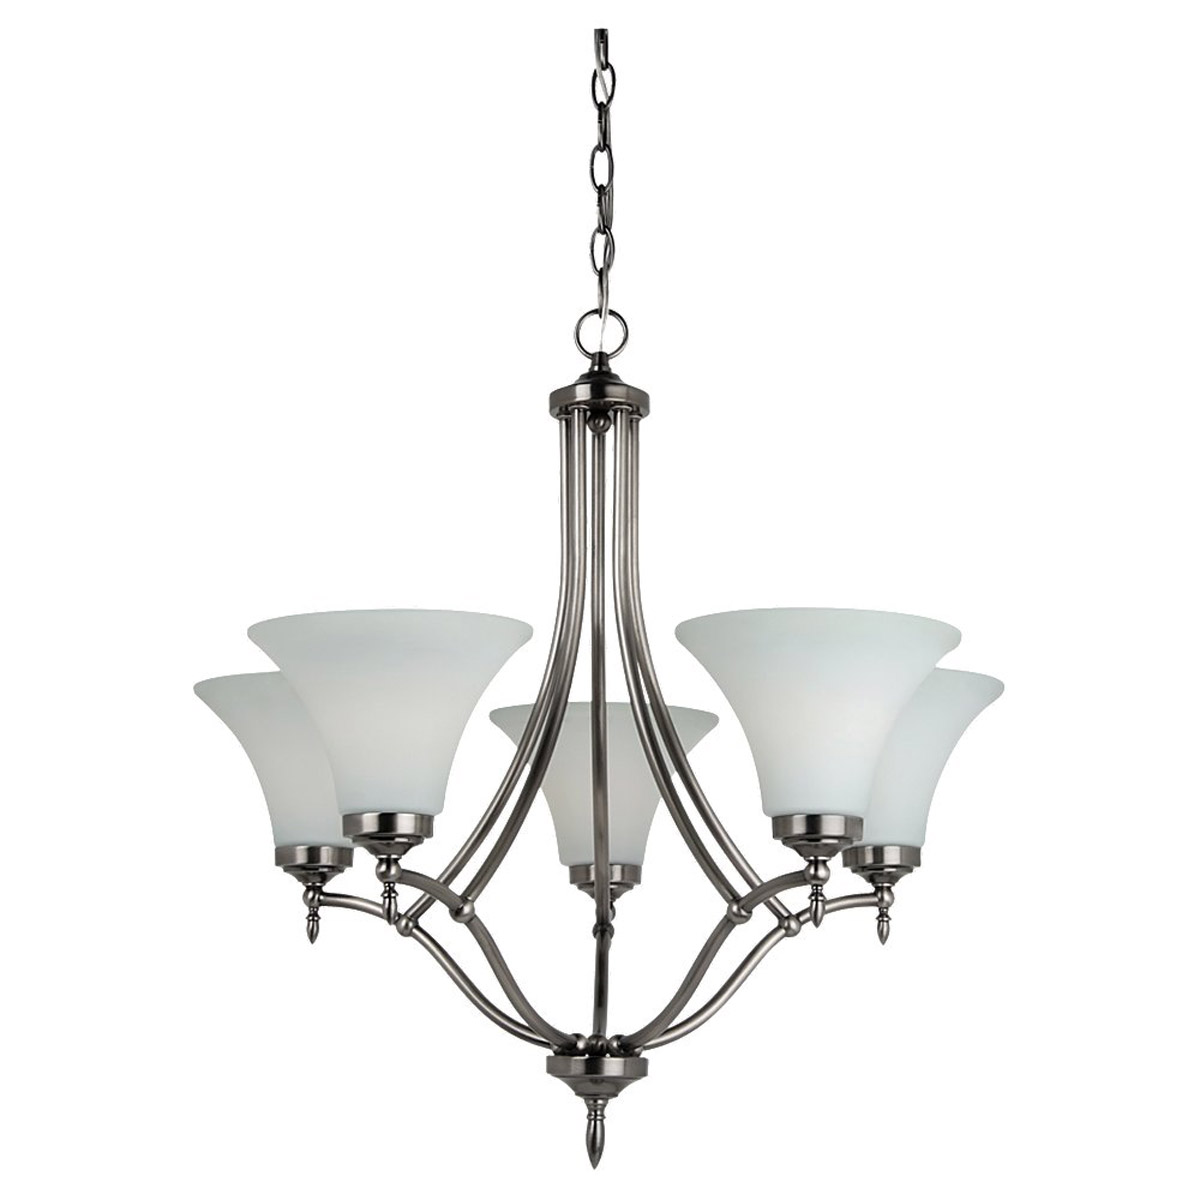 Sea Gull Lighting Montreal 5 Light Chandelier in Antique Brushed Nickel 31181BLE-965 photo